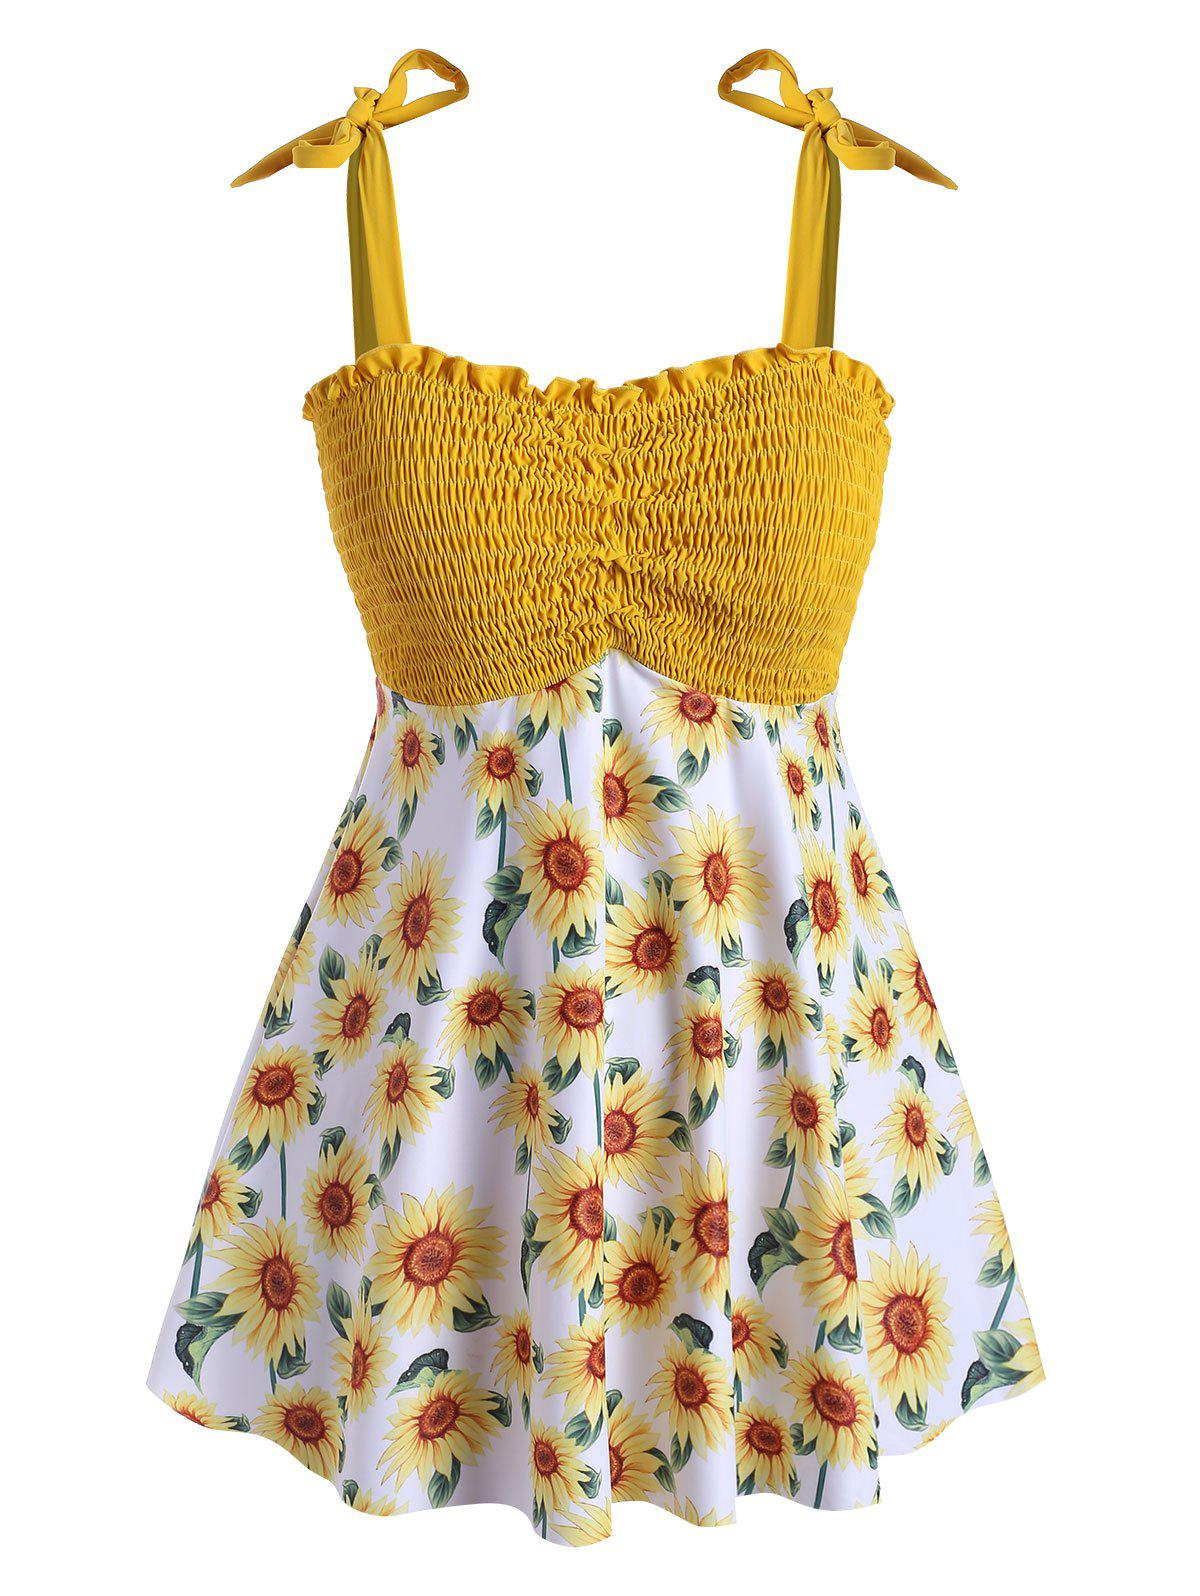 Plus Size Sunflower Print Smocked Tankini Swimsuit - BRIGHT YELLOW 5X